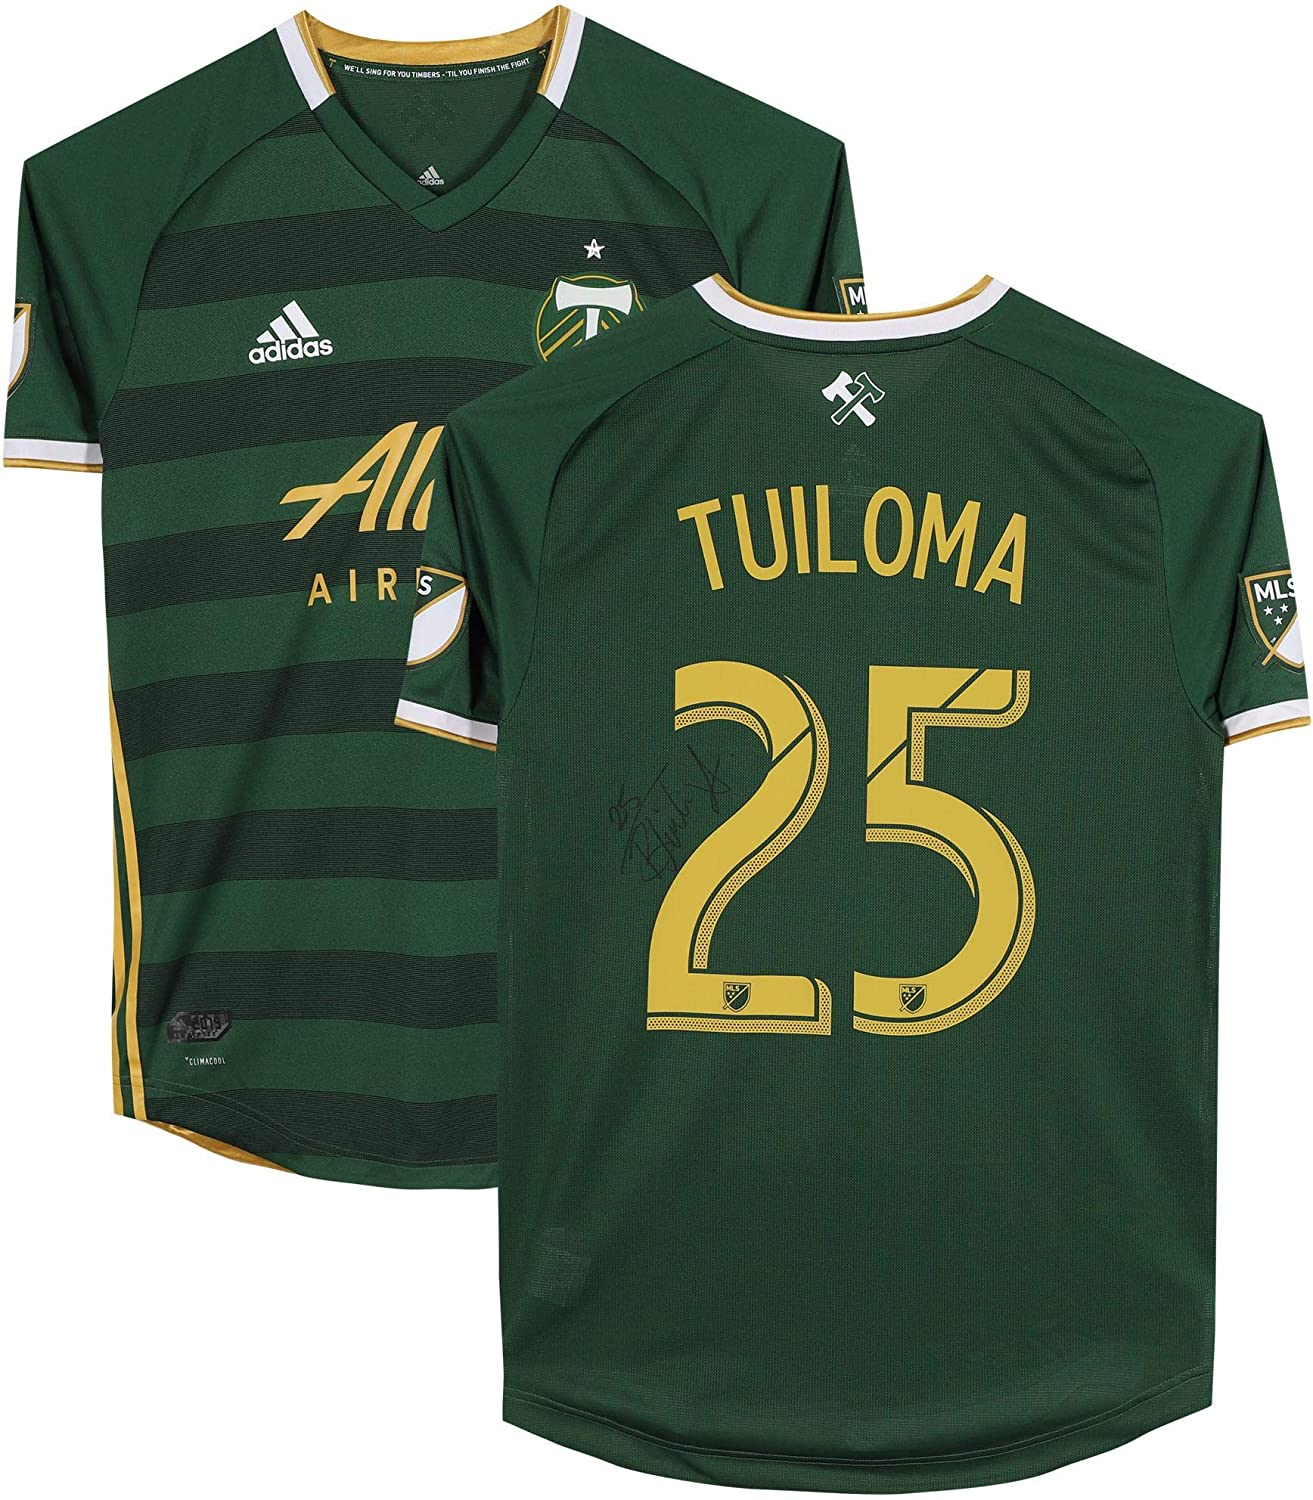 Bill Tuiloma Portland Timbers Autographed Match-Used #25 Green Jersey from the 2019 MLS Season - Fanatics Authentic Certified